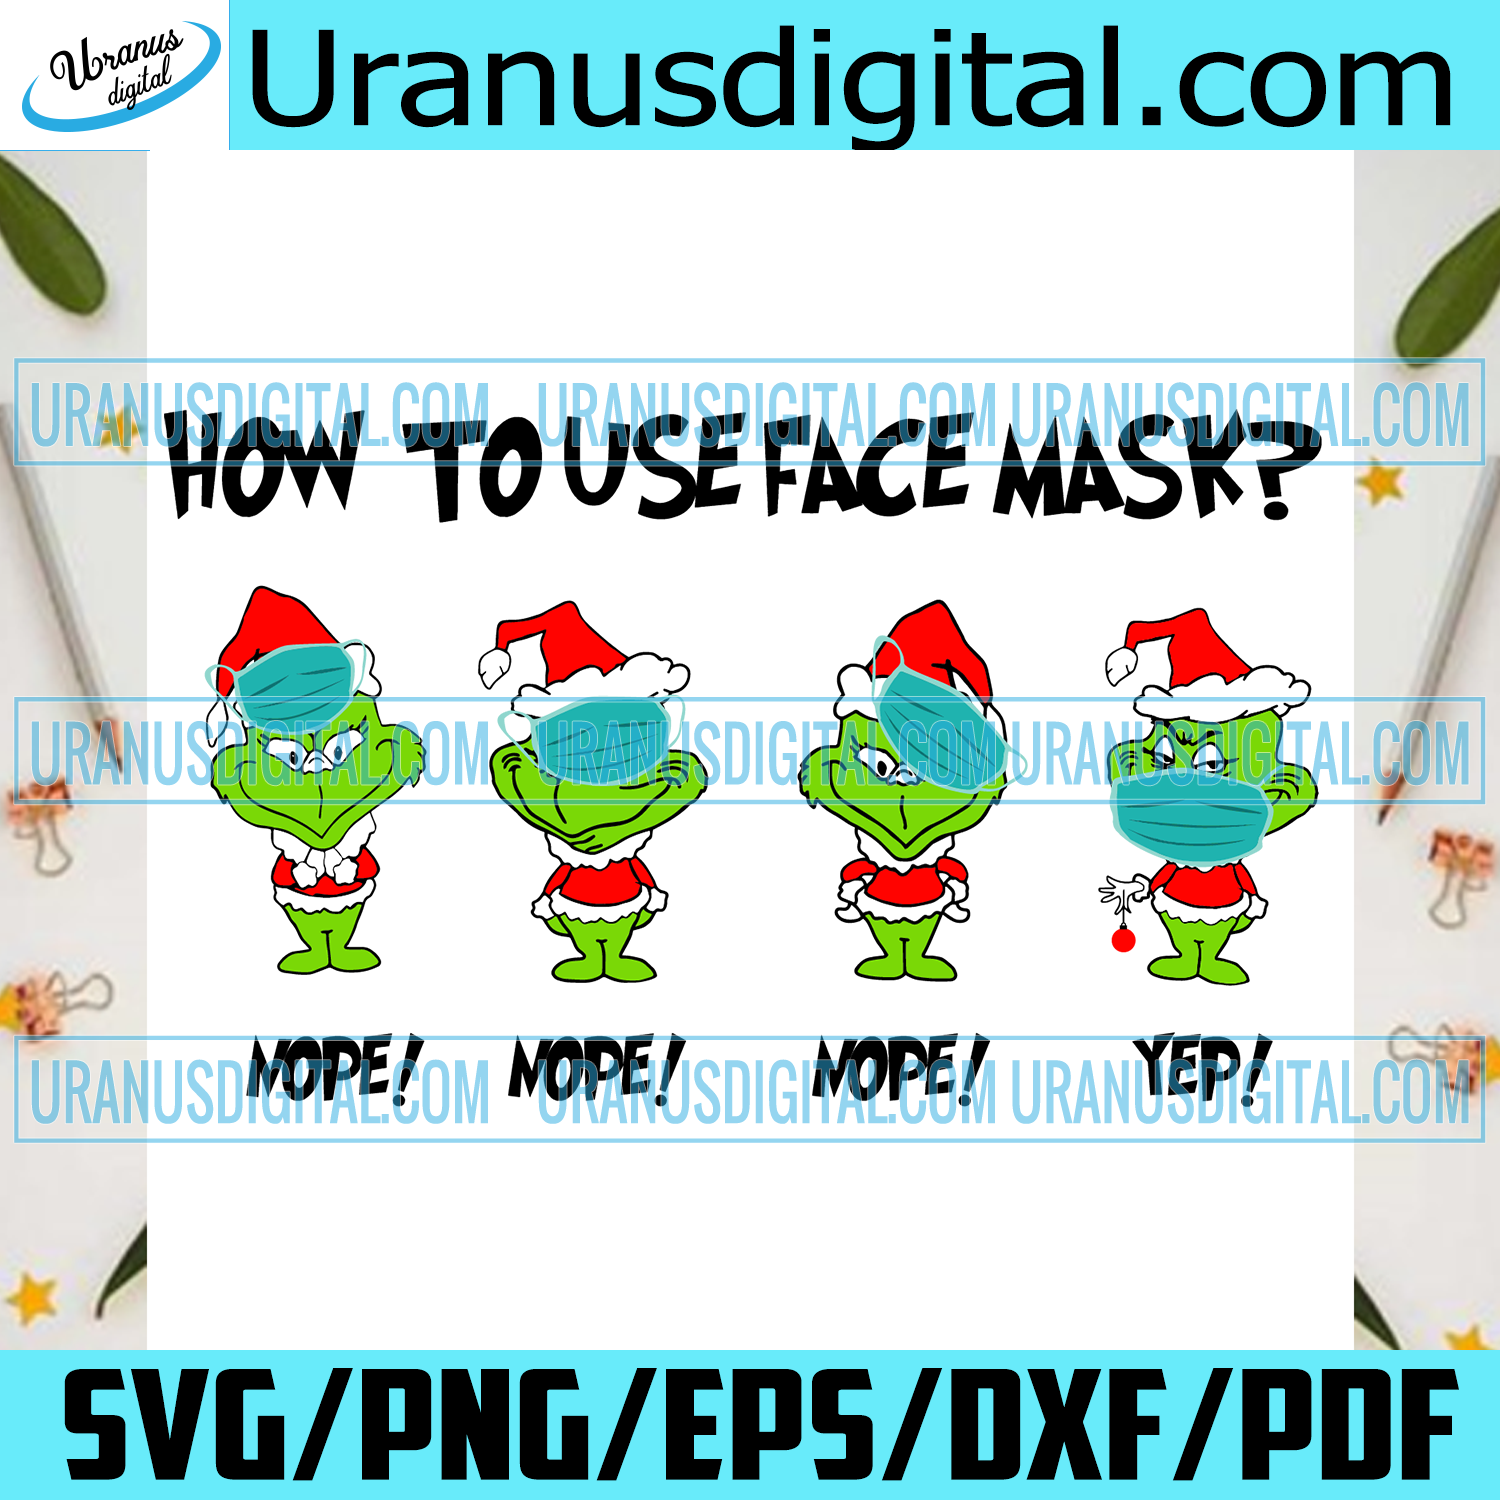 How To Use Face Mask Baby Grinch Svg, Christmas Svg, Xmas Svg, Merry Christmas, Christmas Gift, Grinch Svg, Baby Grinch, Cute Grinch, Wear Face Mask, Quarantine, Social Distance, Santa Grinch